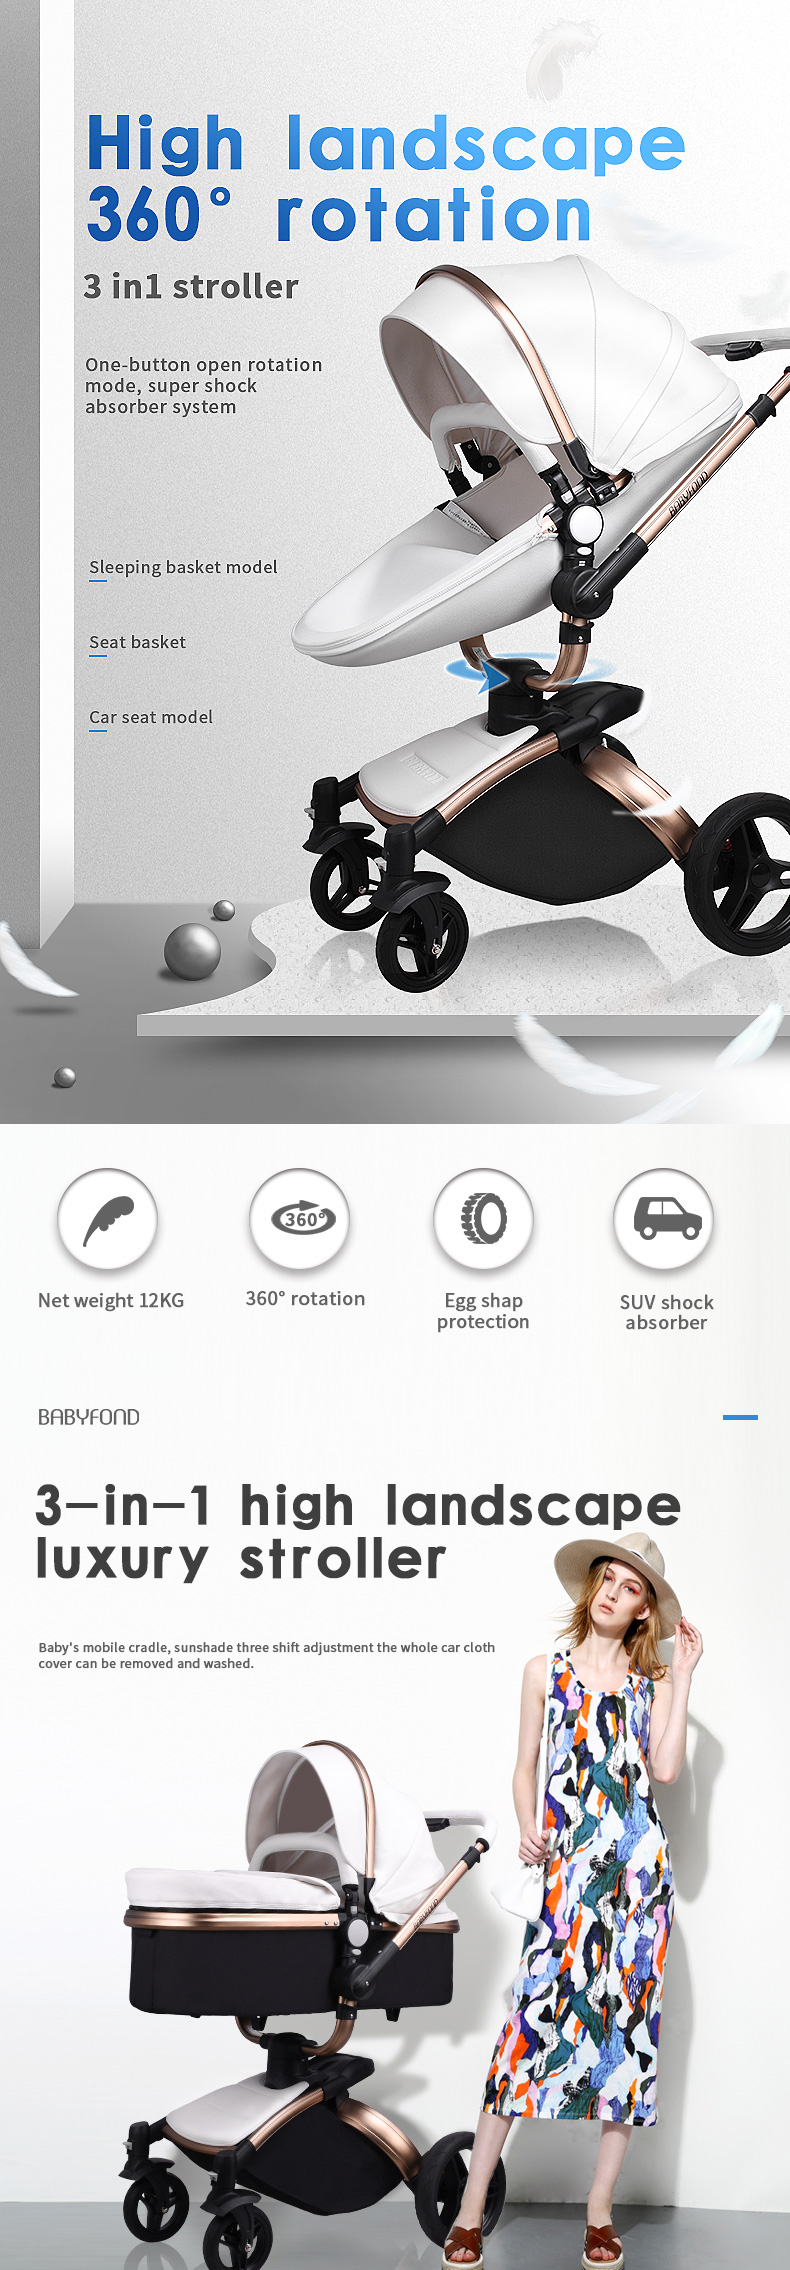 Egg Pram Replacement Wheels Details About 2019 3 In 1 Luxury Baby Stroller Leather Travel Car High View Pram Car Seat Fold